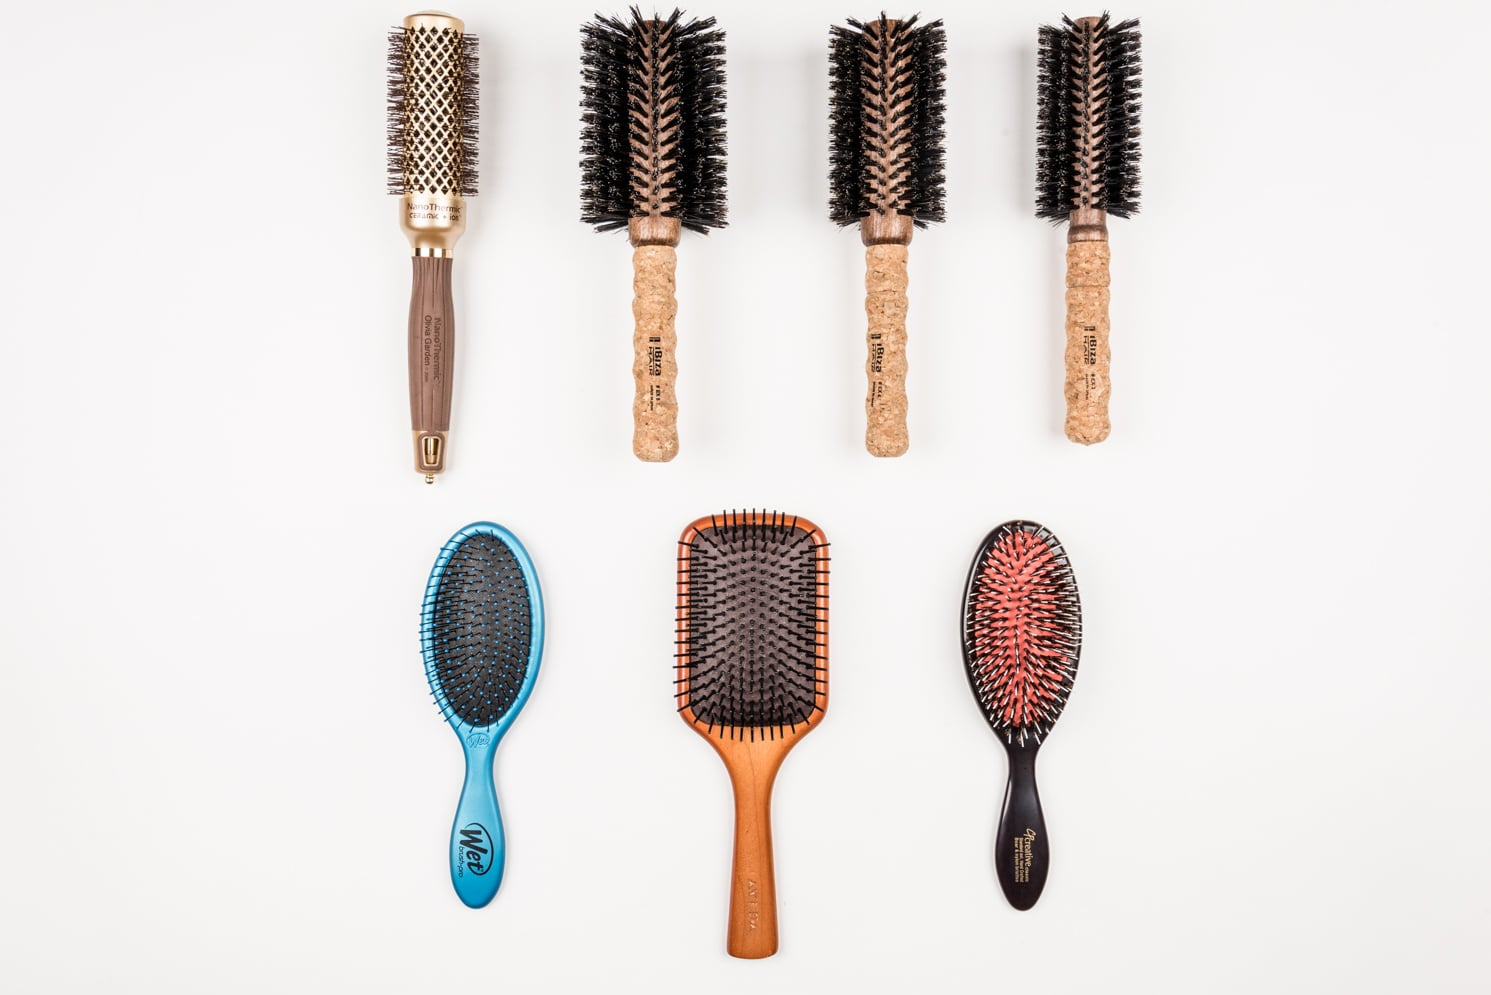 rock mama nyc lifestyle blog - how to pick the right brush - Basic